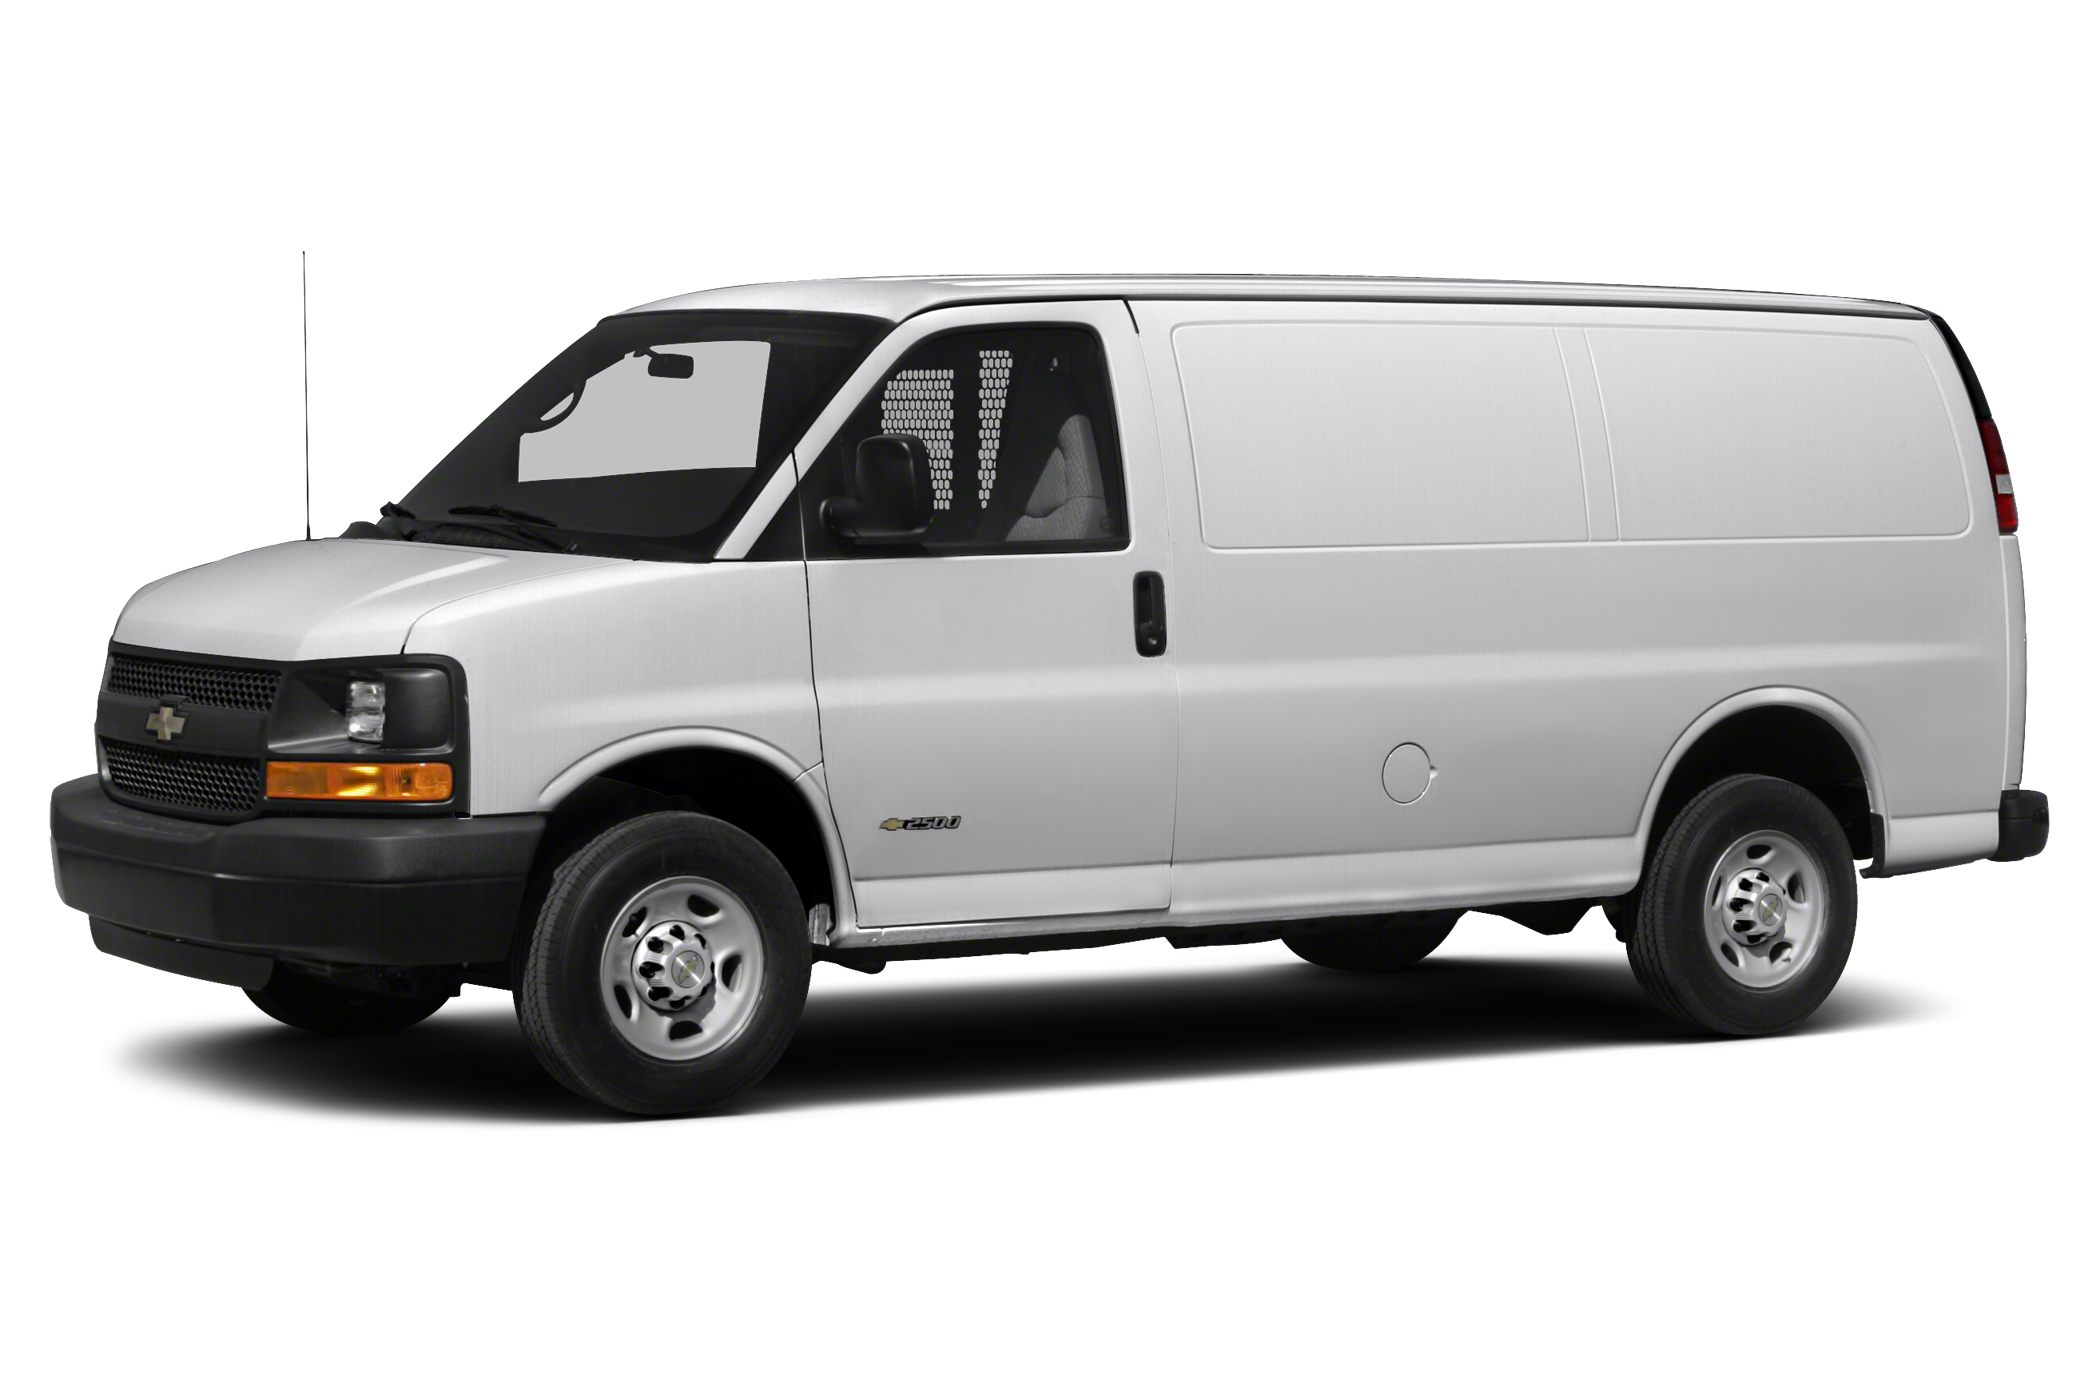 2015 Chevrolet Express 2500 Work Van Cargo Van for sale in Detroit Lakes for $32,500 with 3 miles.